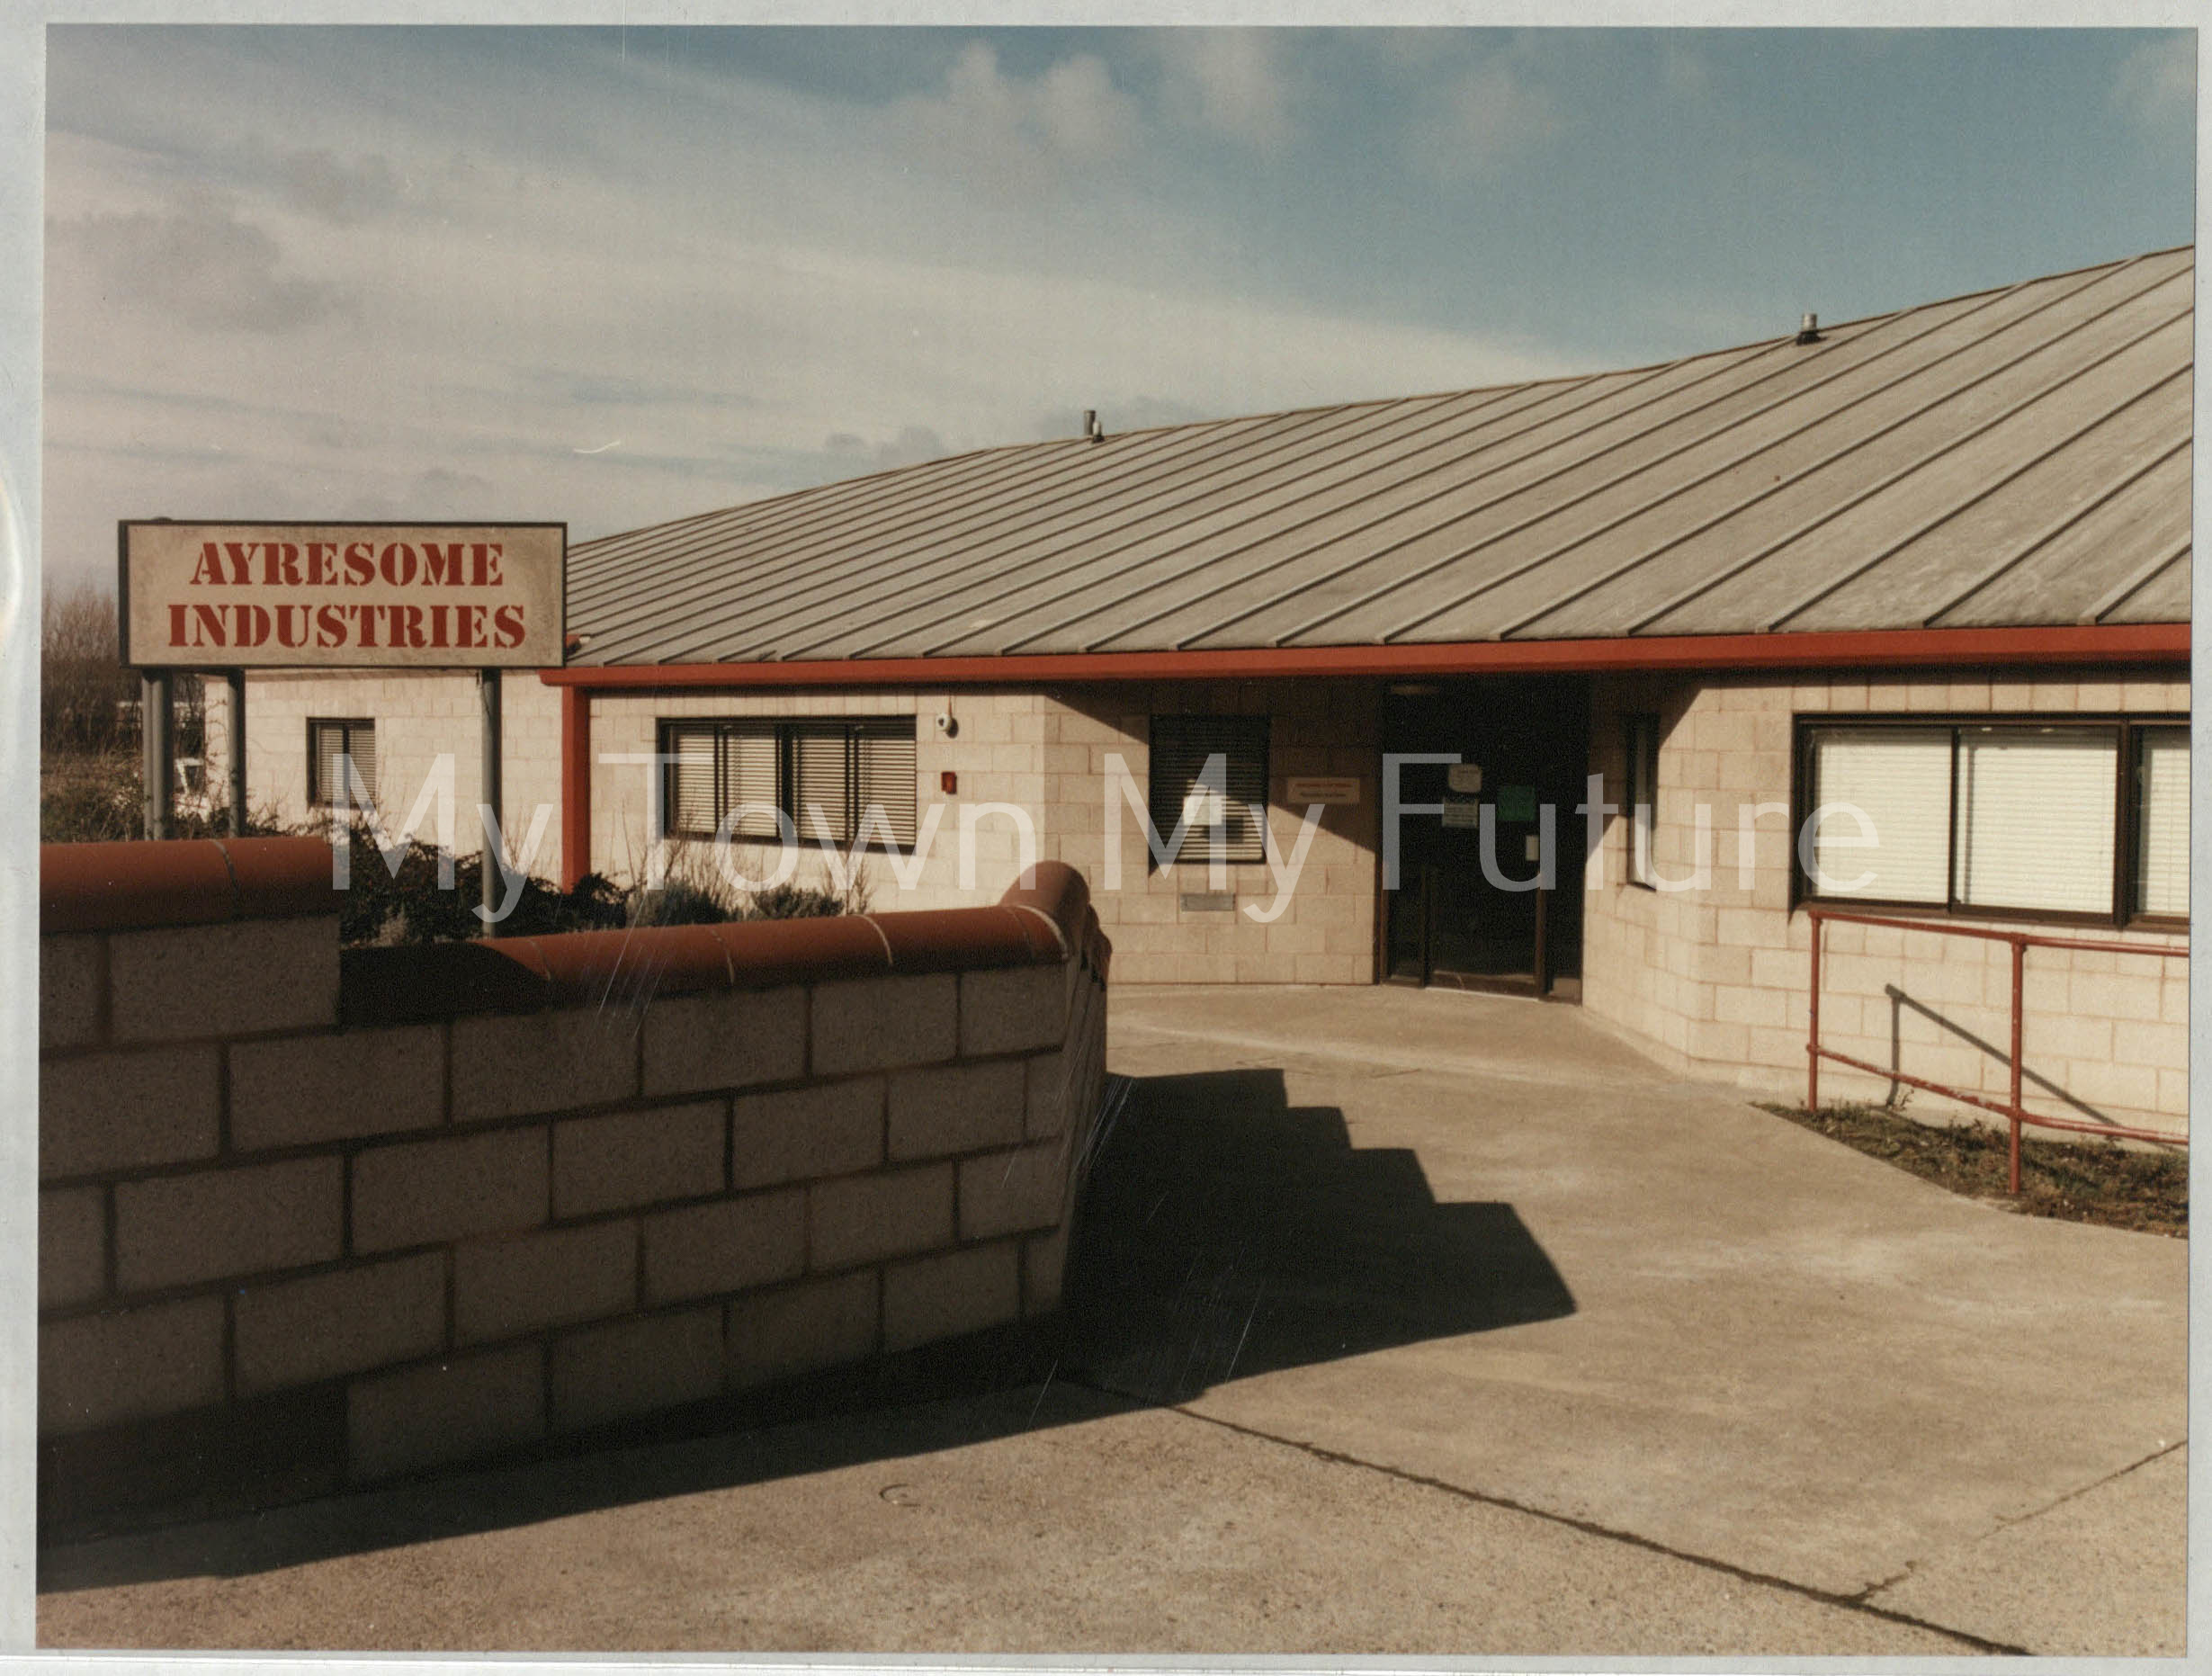 Ayresome Workshops, 1988, Department of Planning - Cleveland County Council